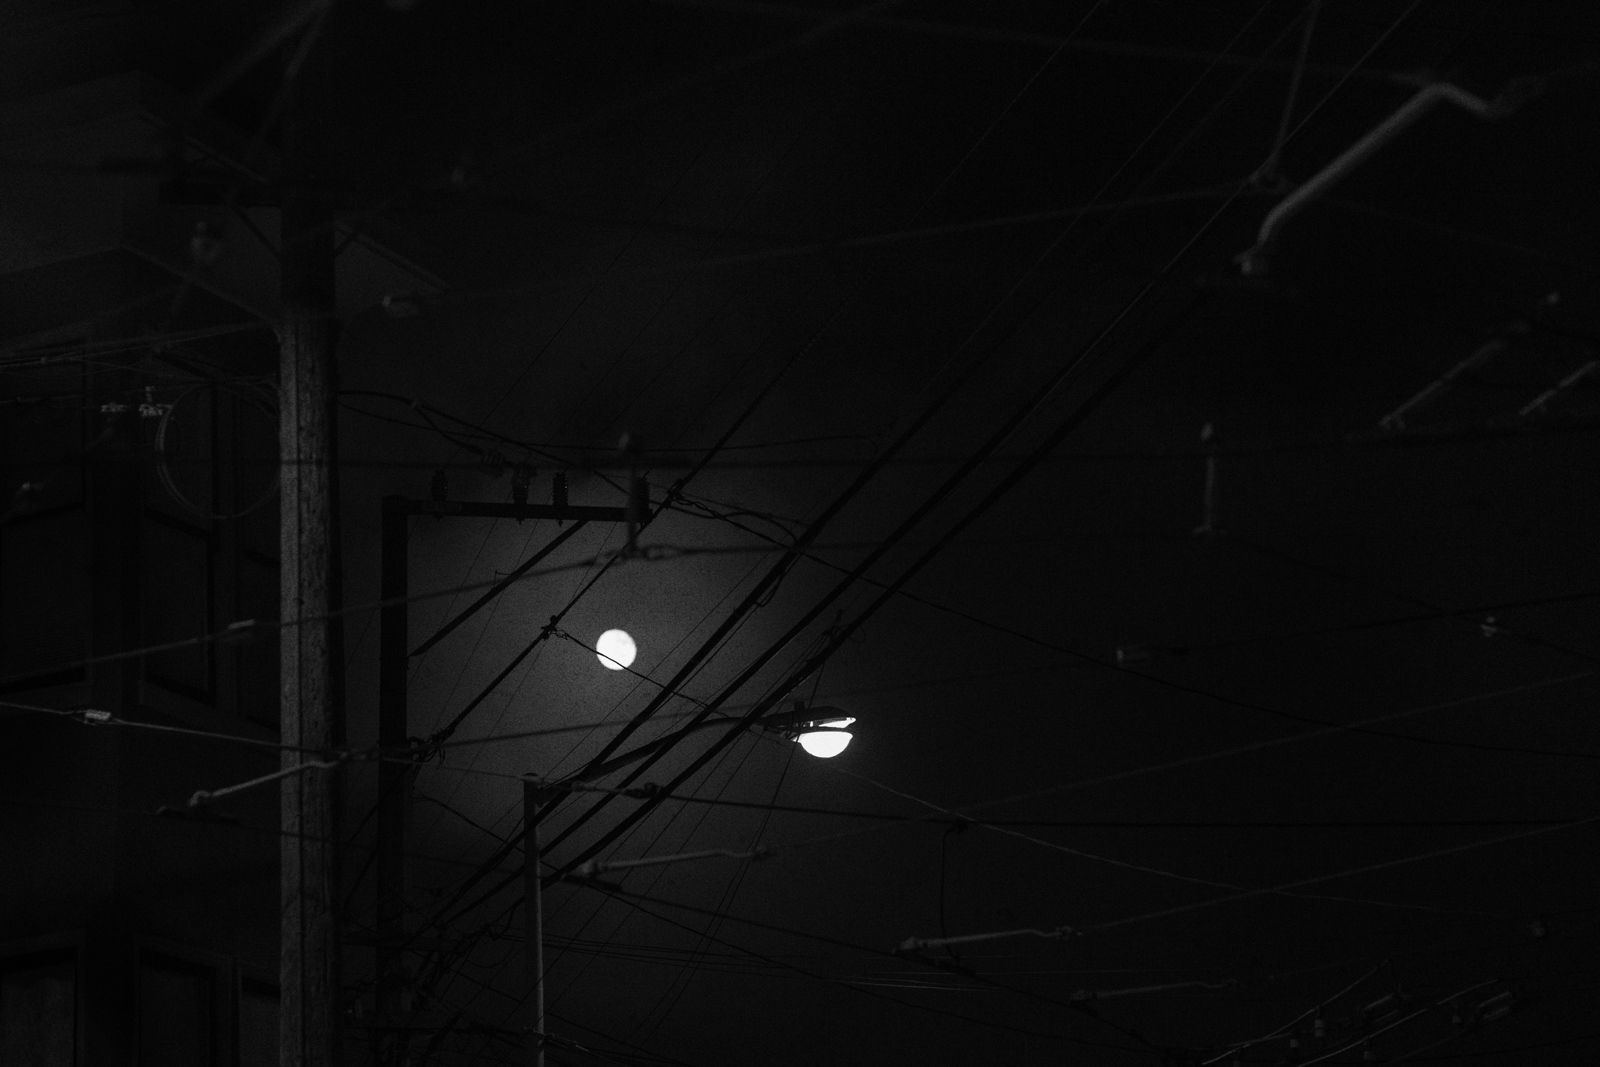 wires in the night